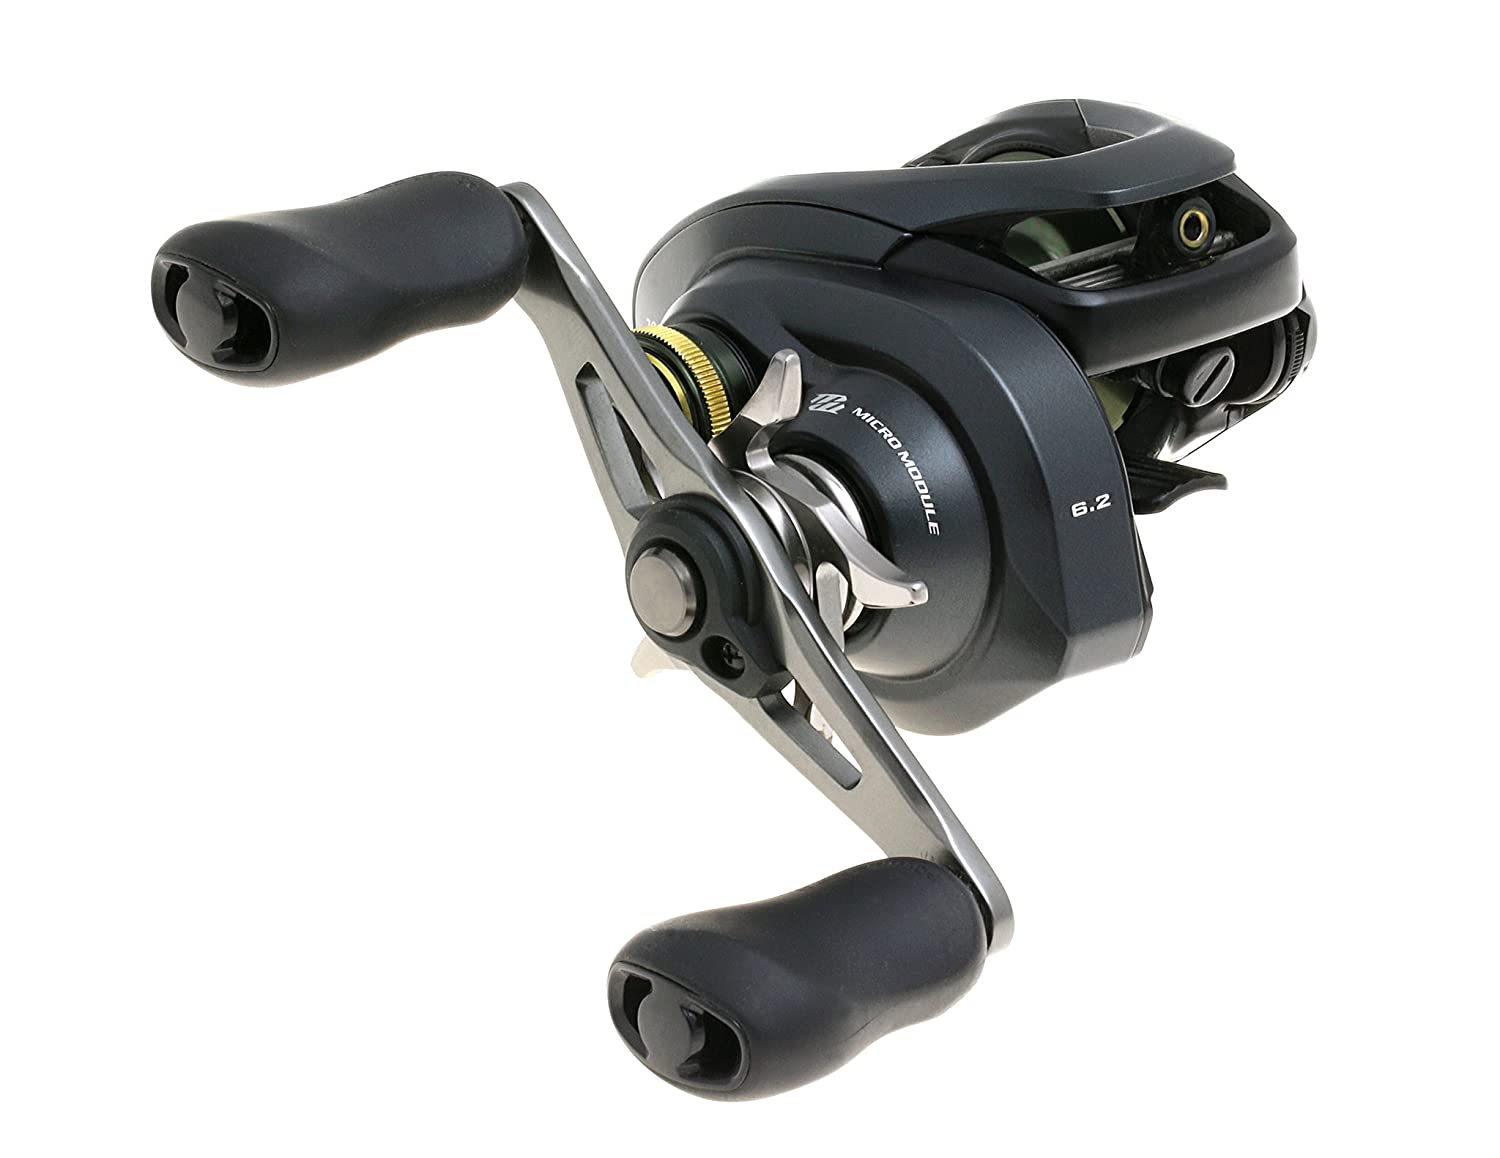 91f86d52c56 Amazon.com : SHIMANO Curado XG Baitcast Reels : Sports & Outdoors